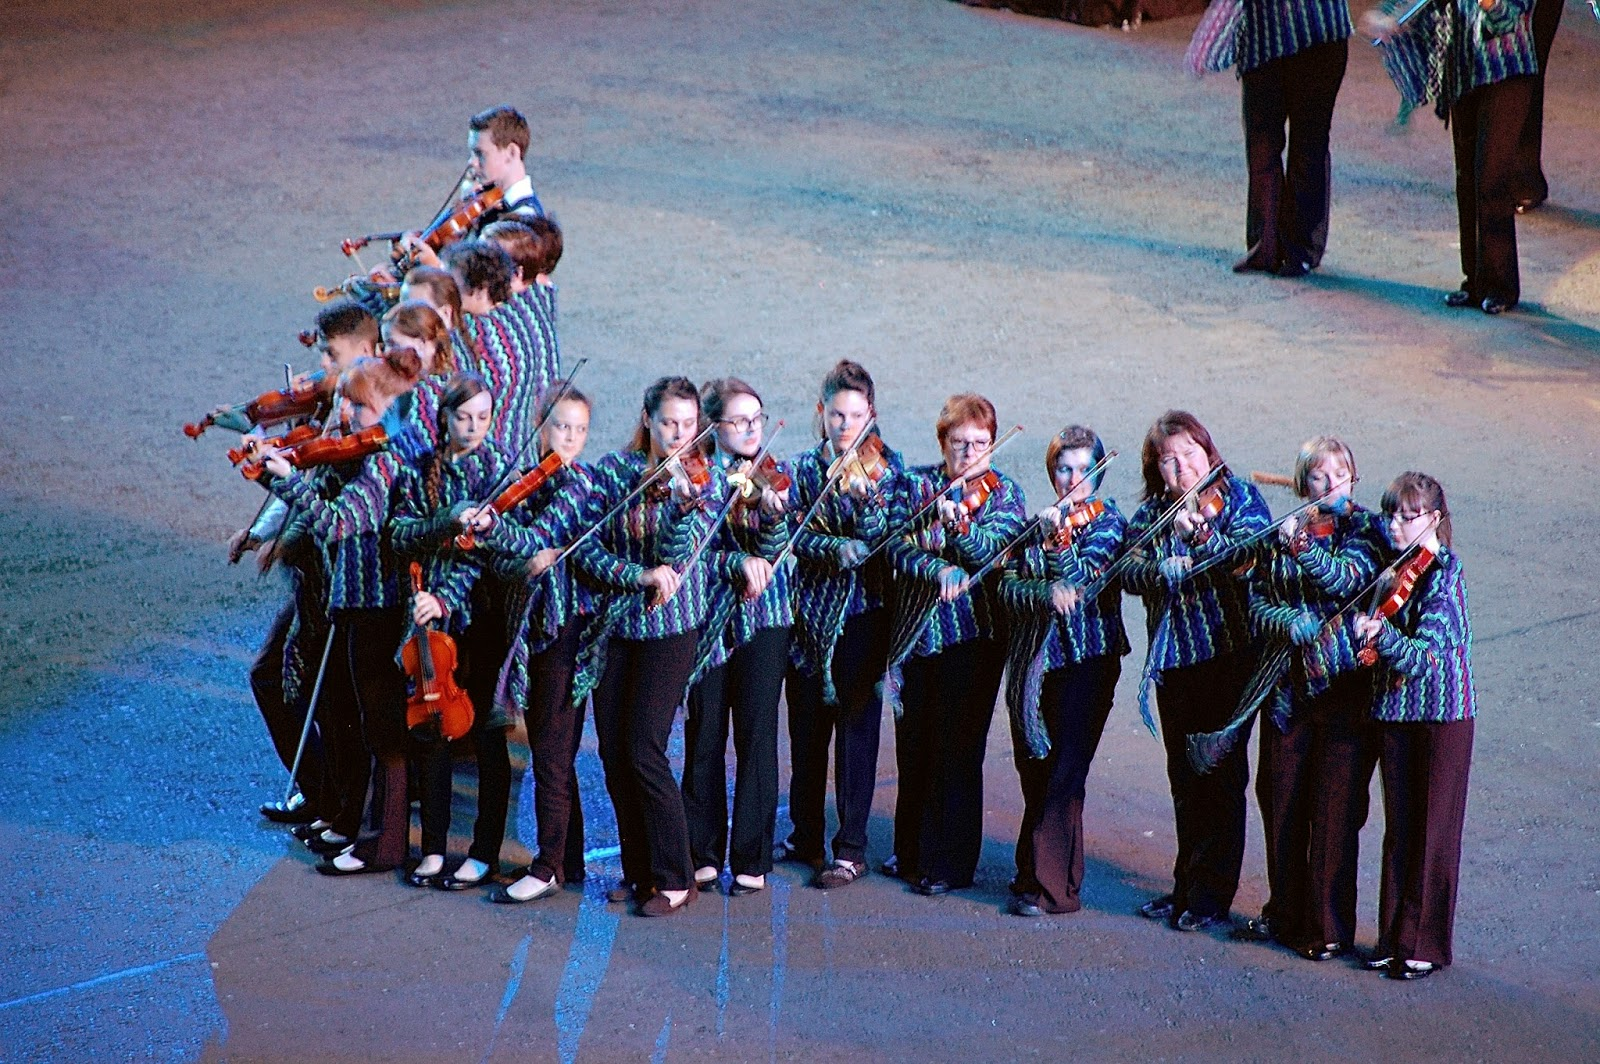 Shetland fiddlers trying to march